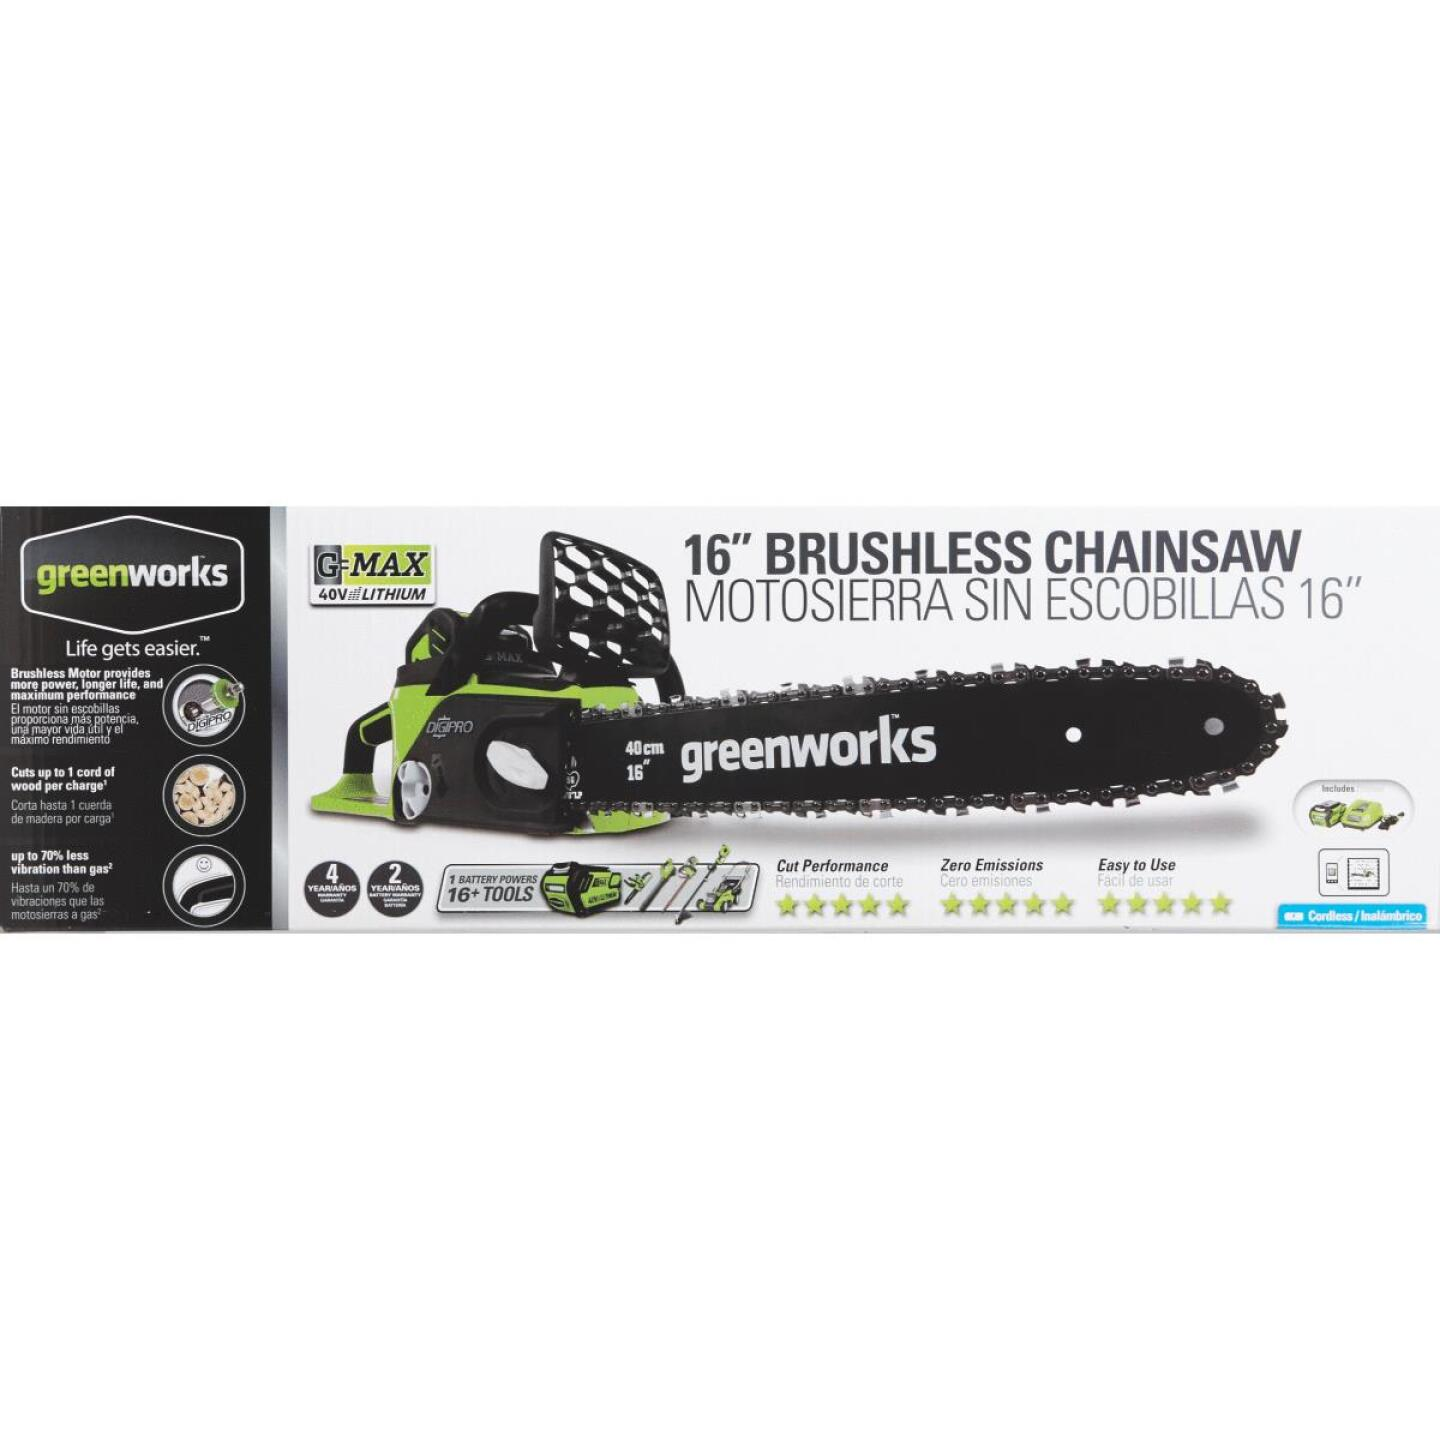 Greenworks G-MAX 16 In. 40V Lithium Ion Brushless Cordless Chainsaw Image 2